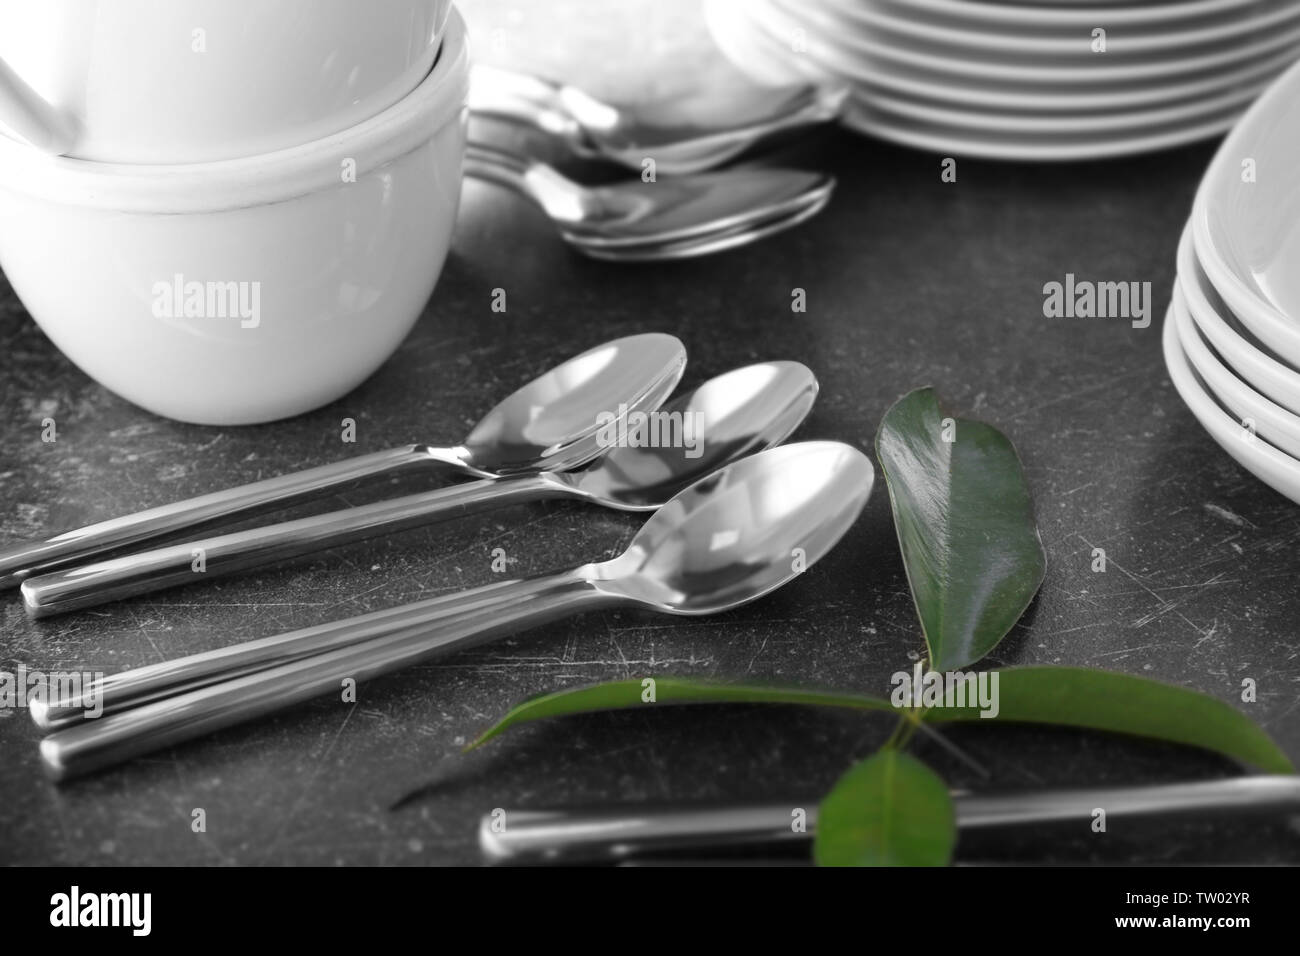 Cutlery set with plates on gray table - Stock Image